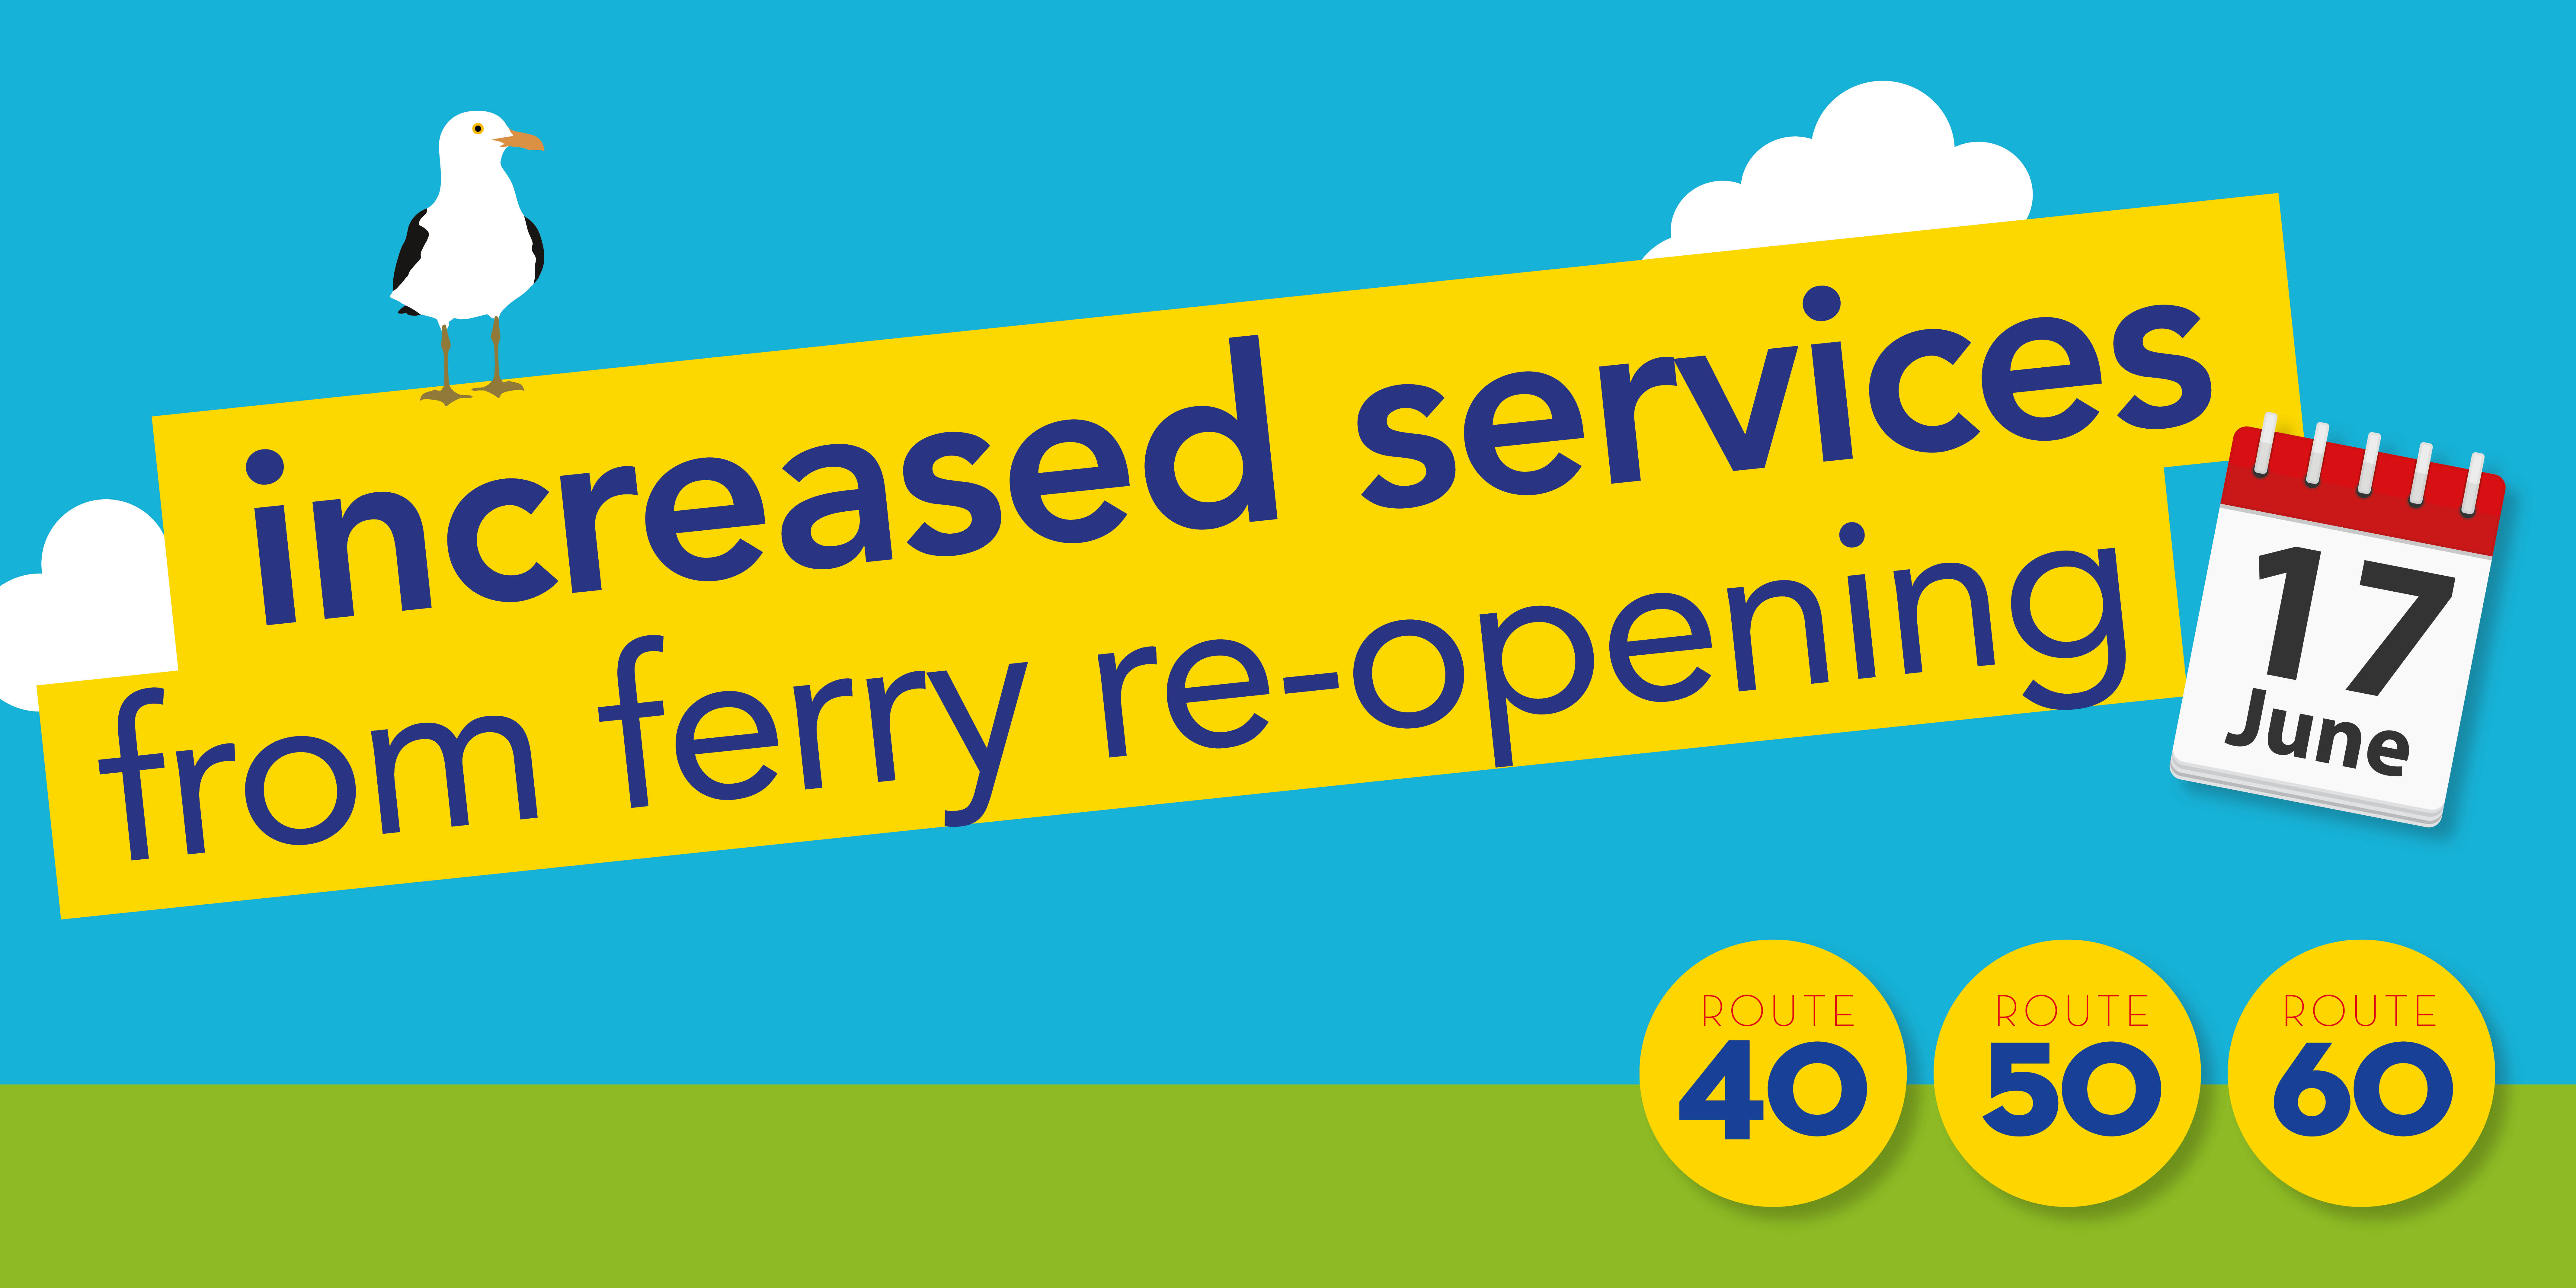 Image reading 'increased services from ferry re-opening Purbeck Breezer 40, 50 and 60 from Wednesday 17th June'